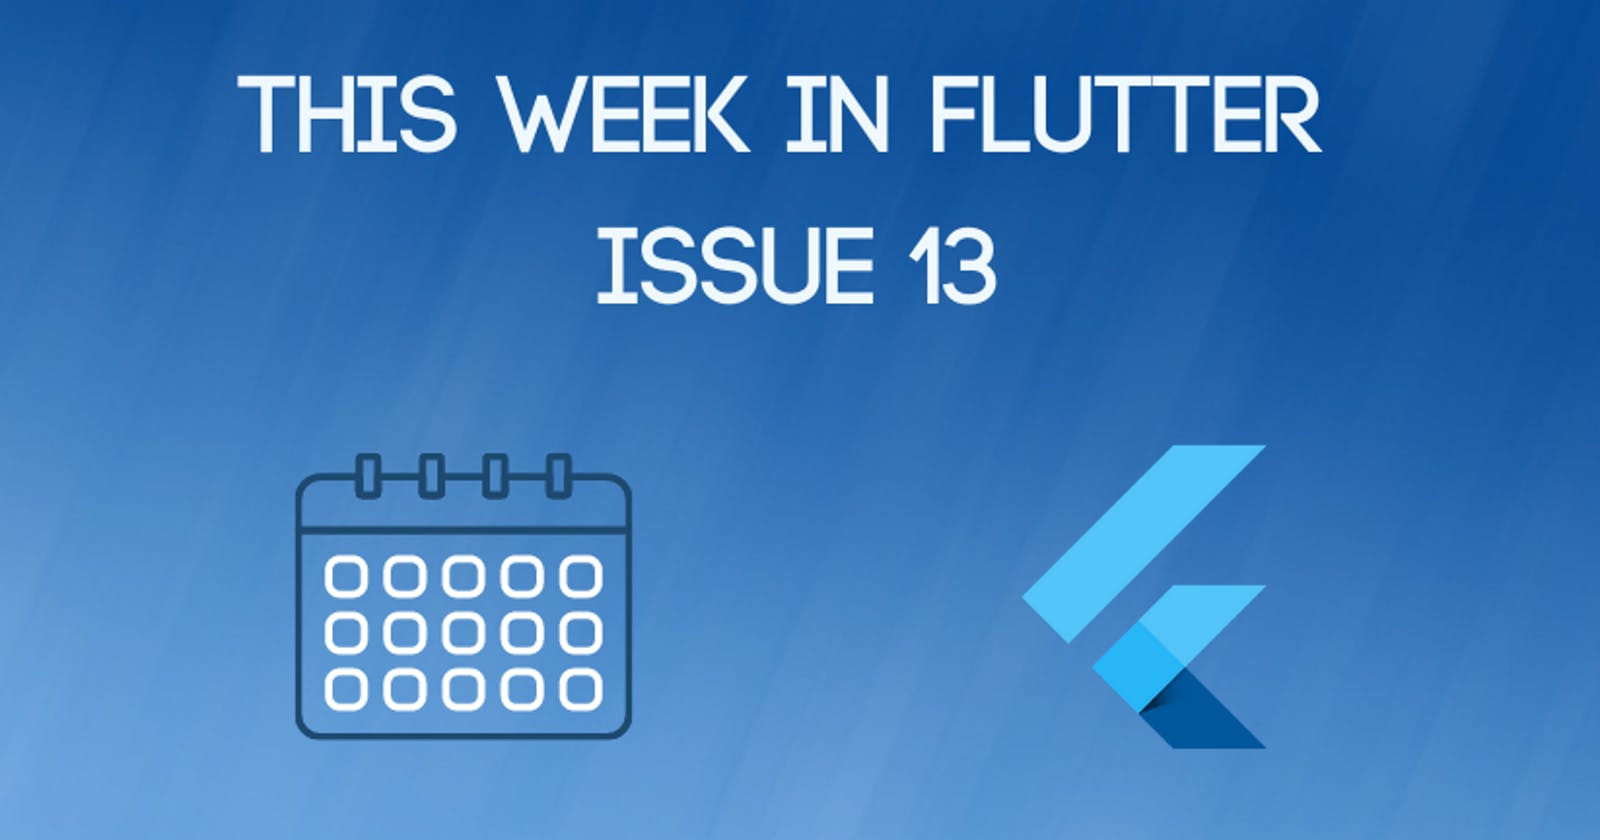 This week in Flutter #13